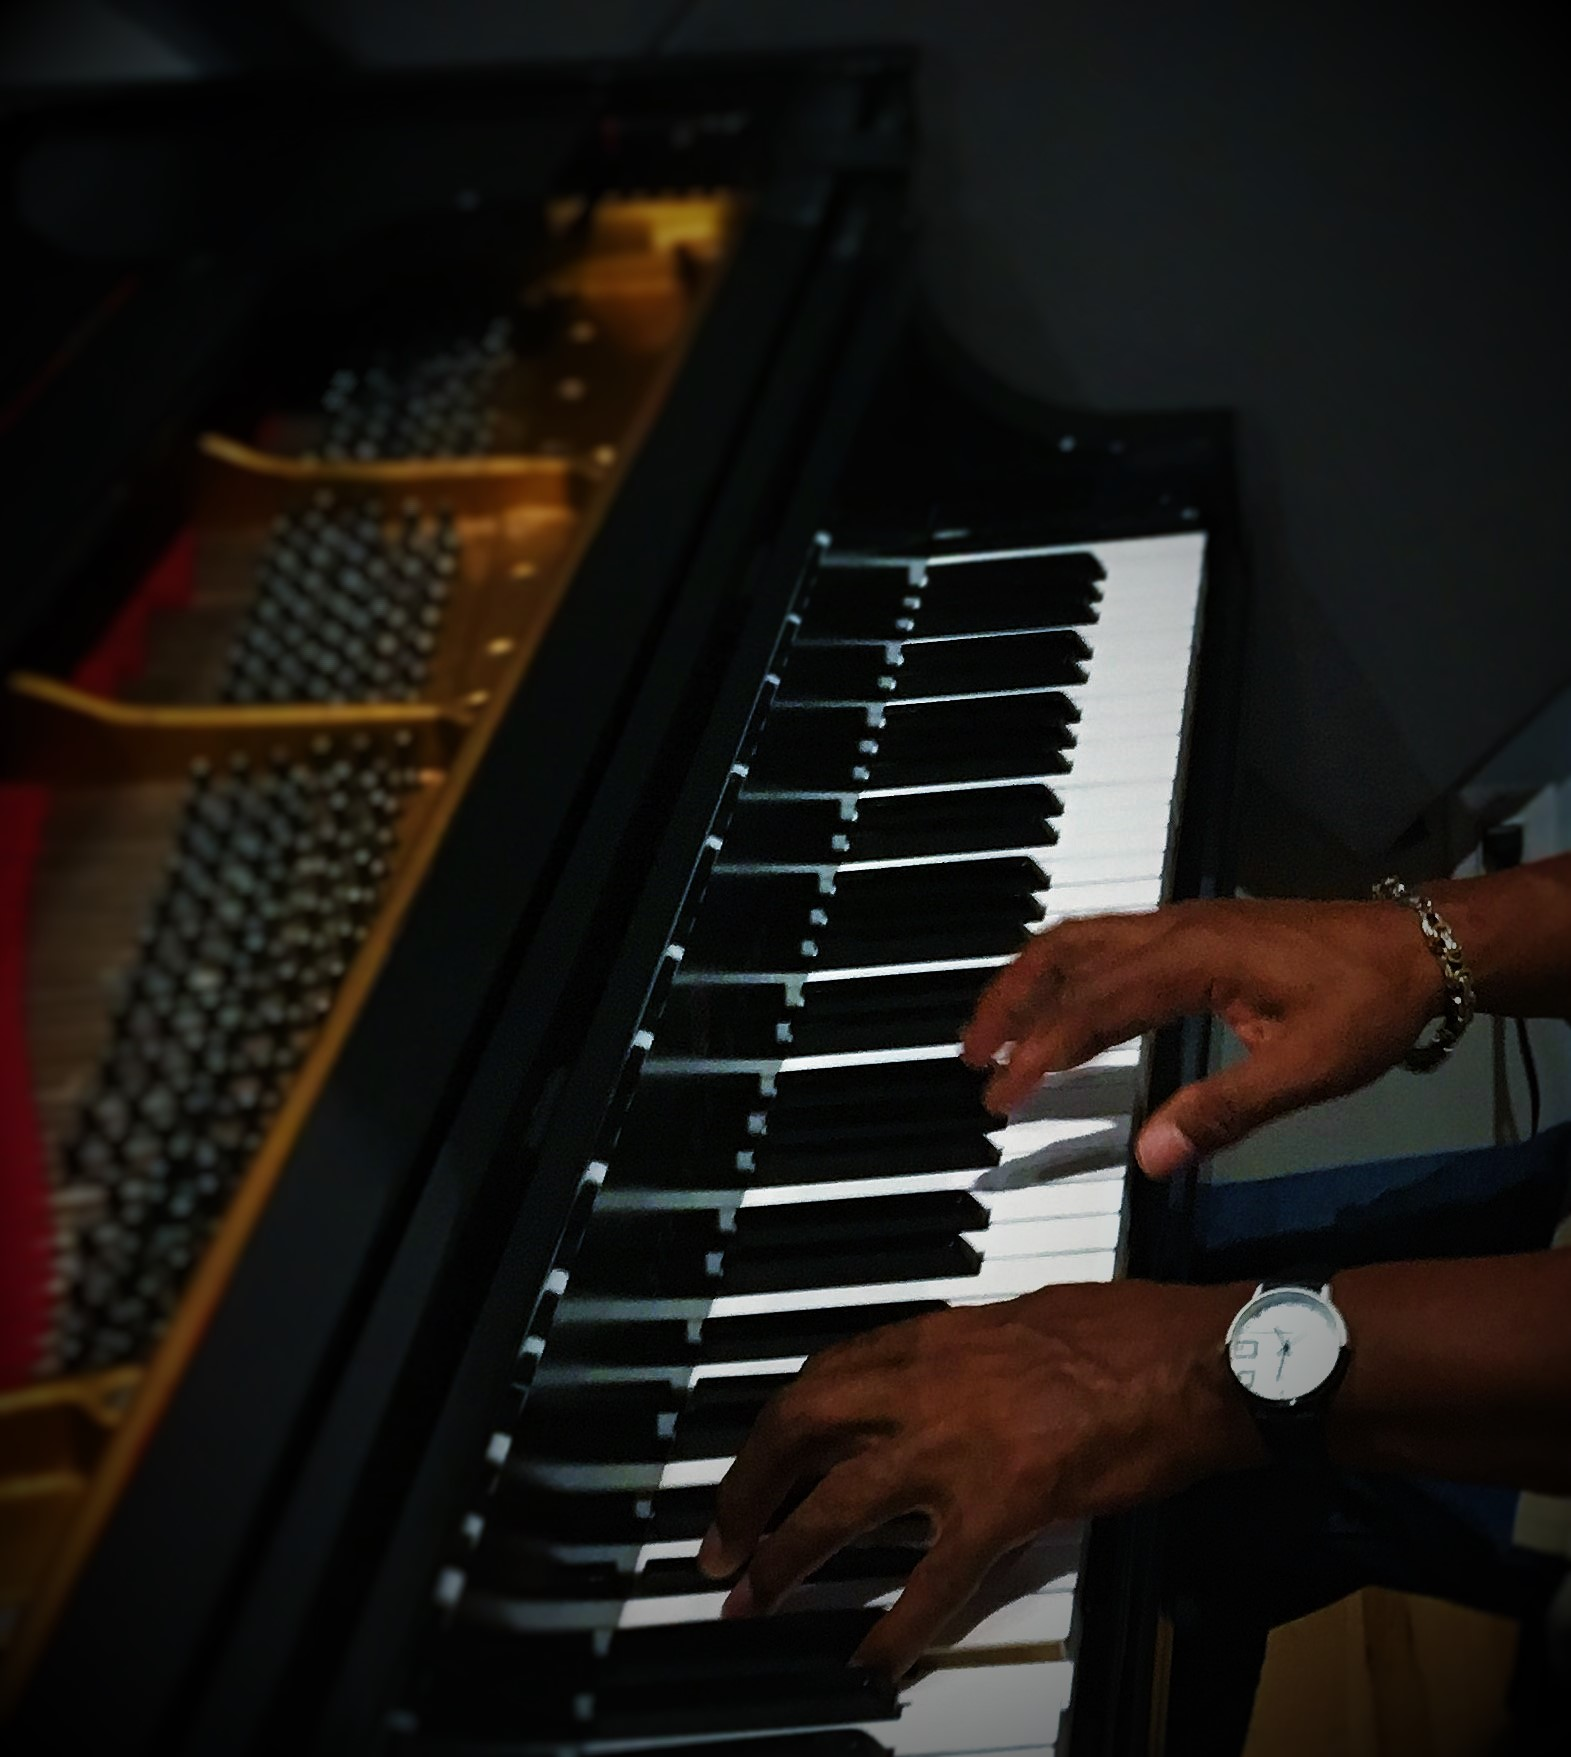 Hands on Keys.JPG